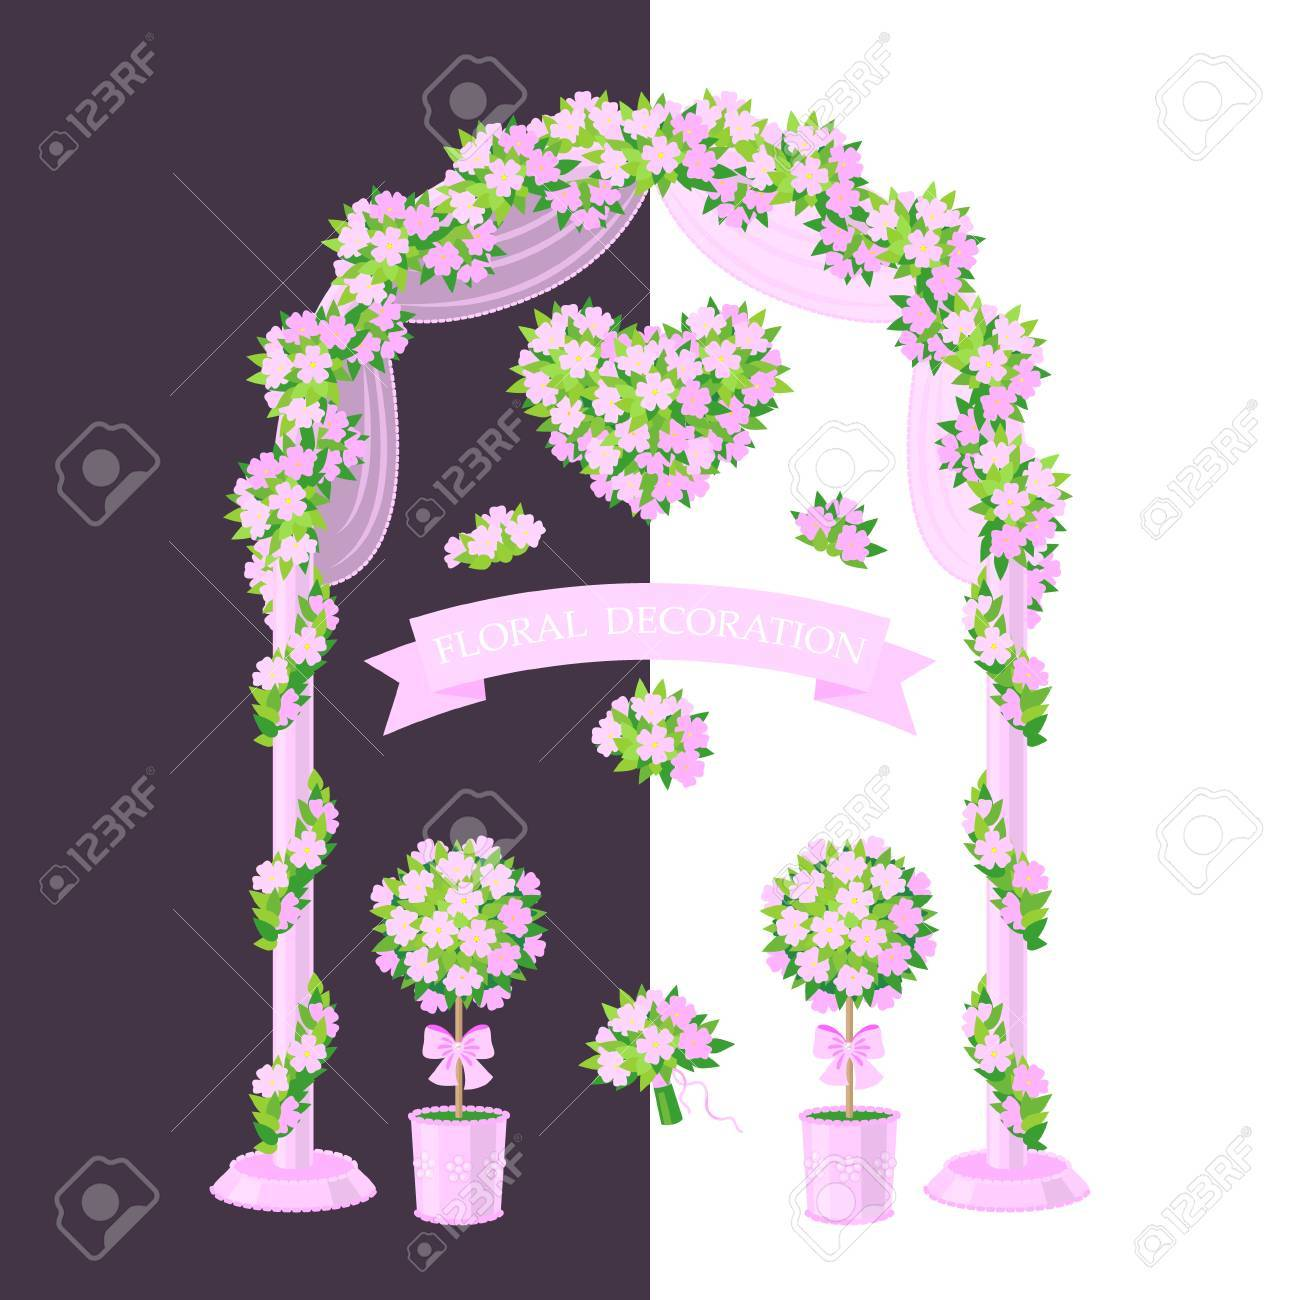 Simplified Image Of Arch Topiary Flower Heart And Bouquet Royalty Free Cliparts Vectors And Stock Illustration Image 47271217